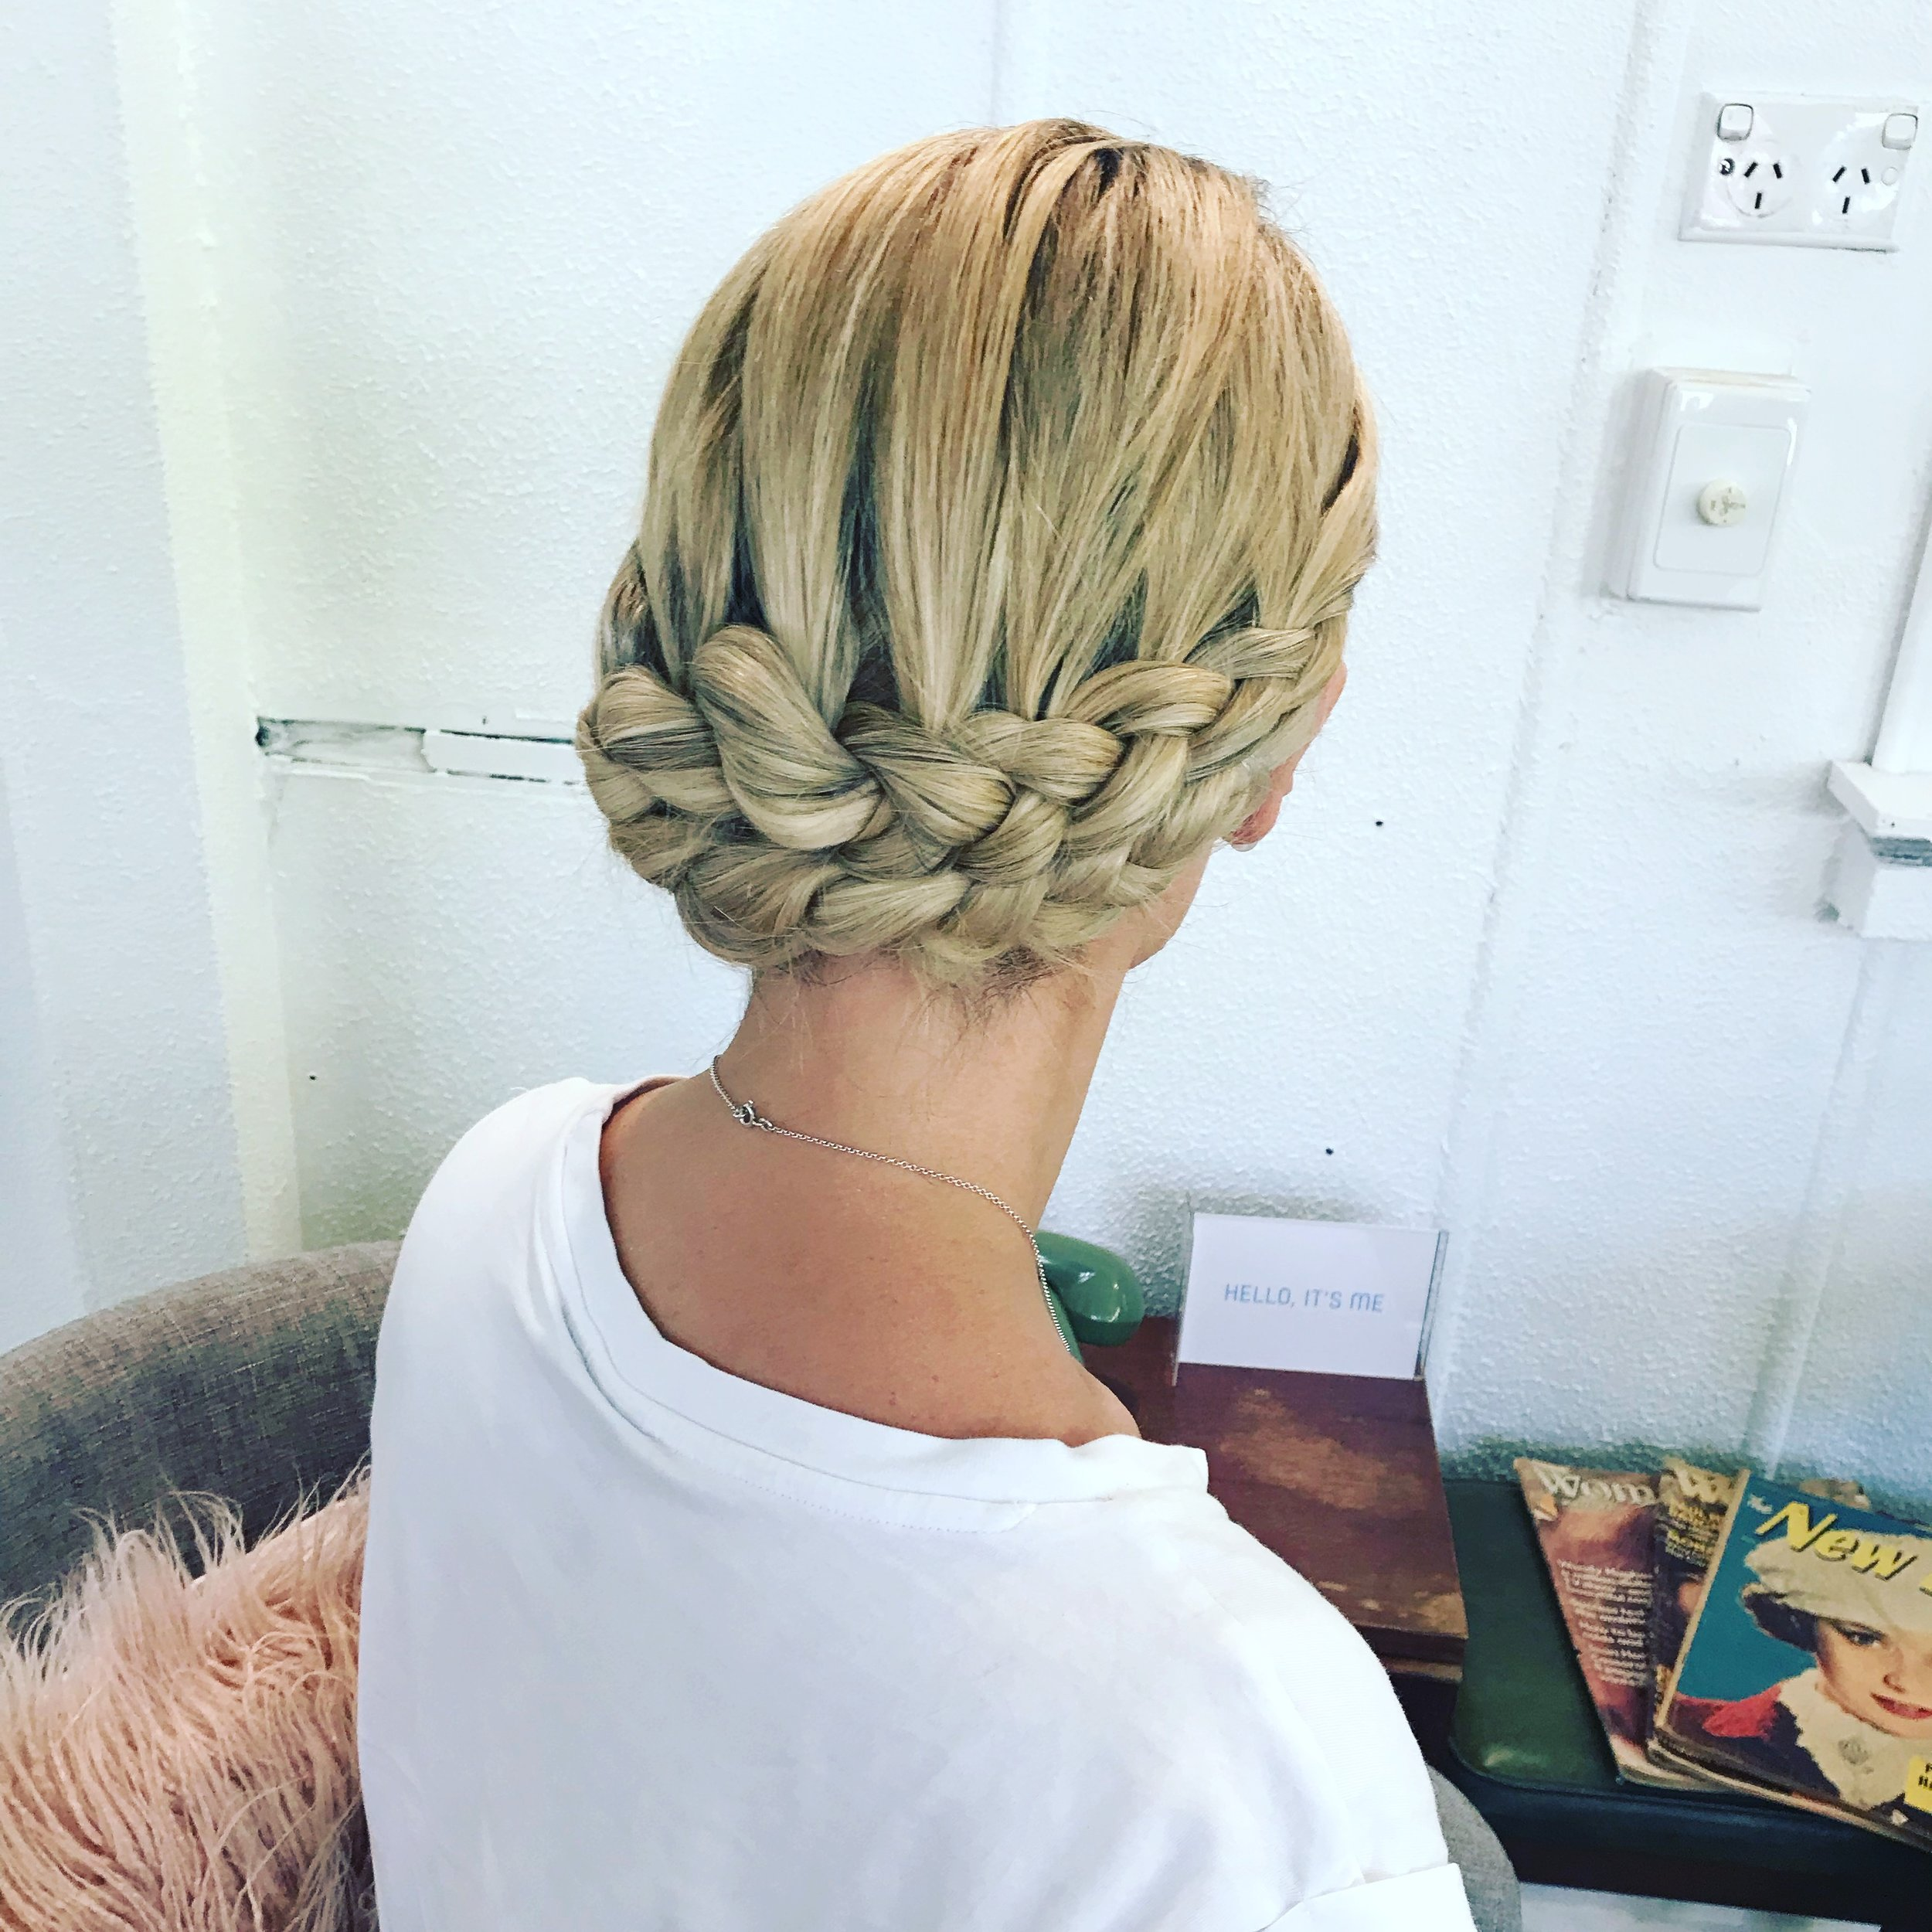 Hair Braiding Salon Australia Kellie Turner 41.JPG